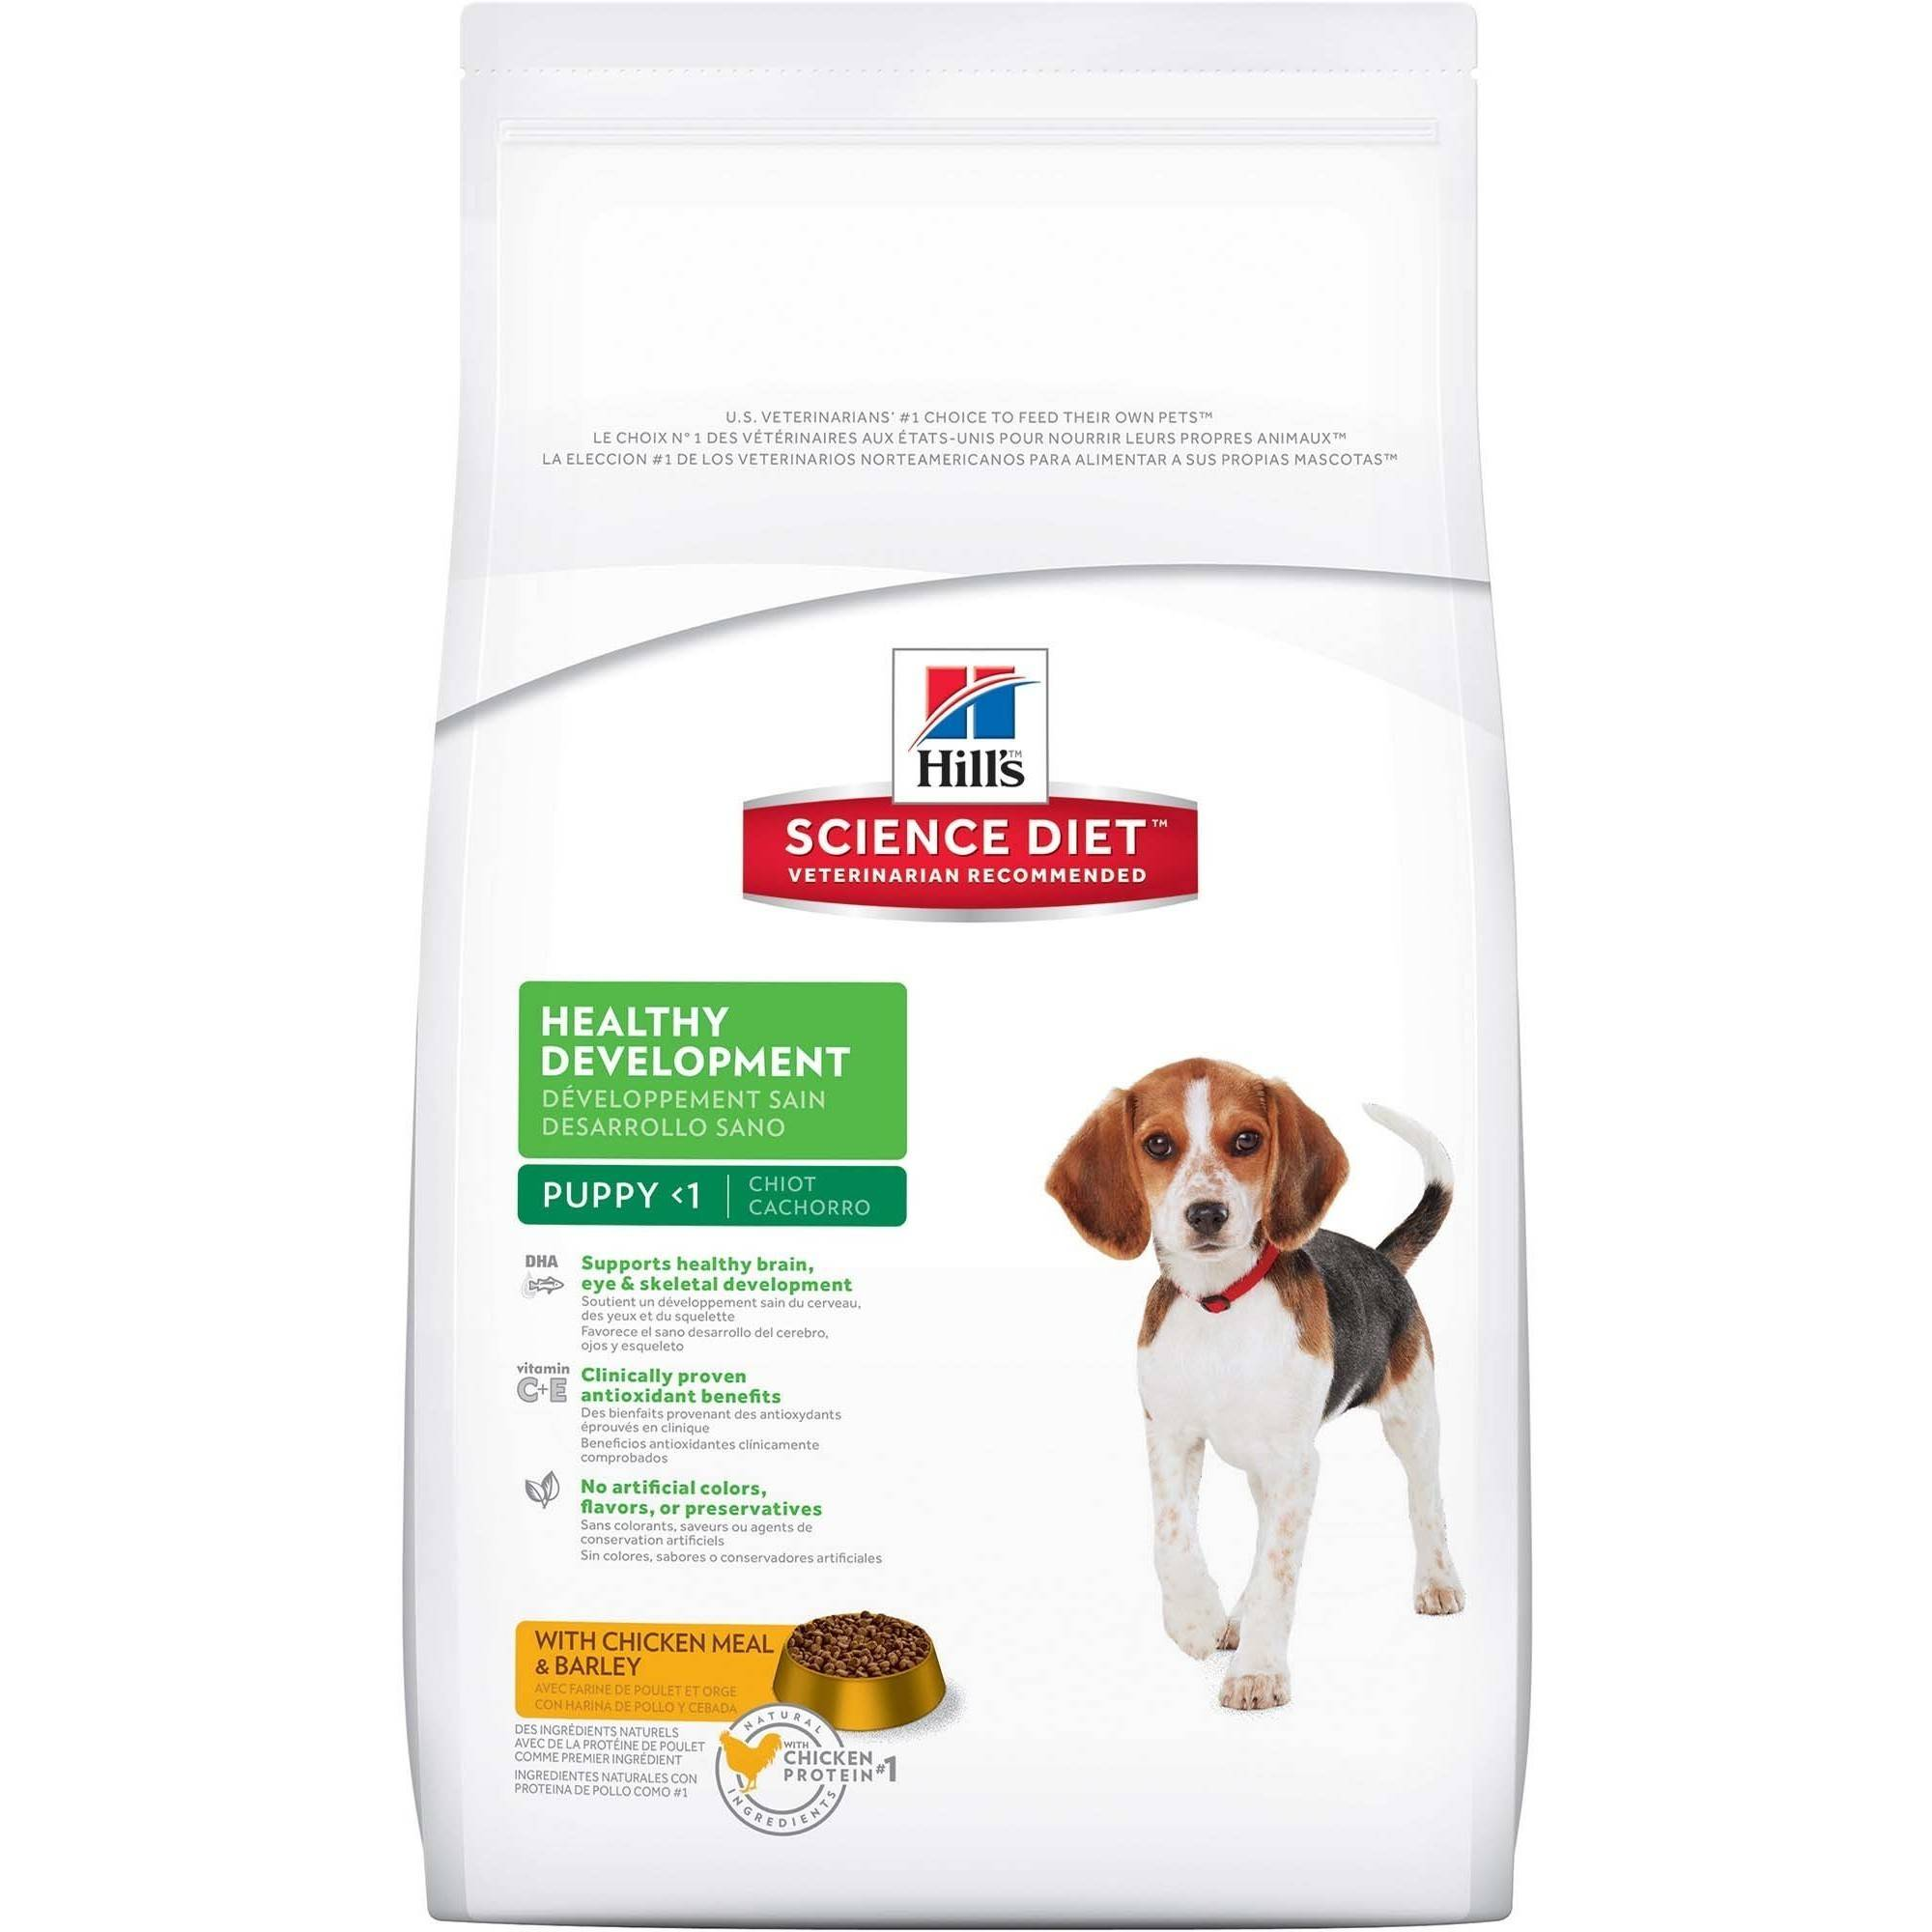 Hill's Science Diet Puppy Healthy Development with Chicken Meal & Barley Dry Dog Food, 30 lb bag